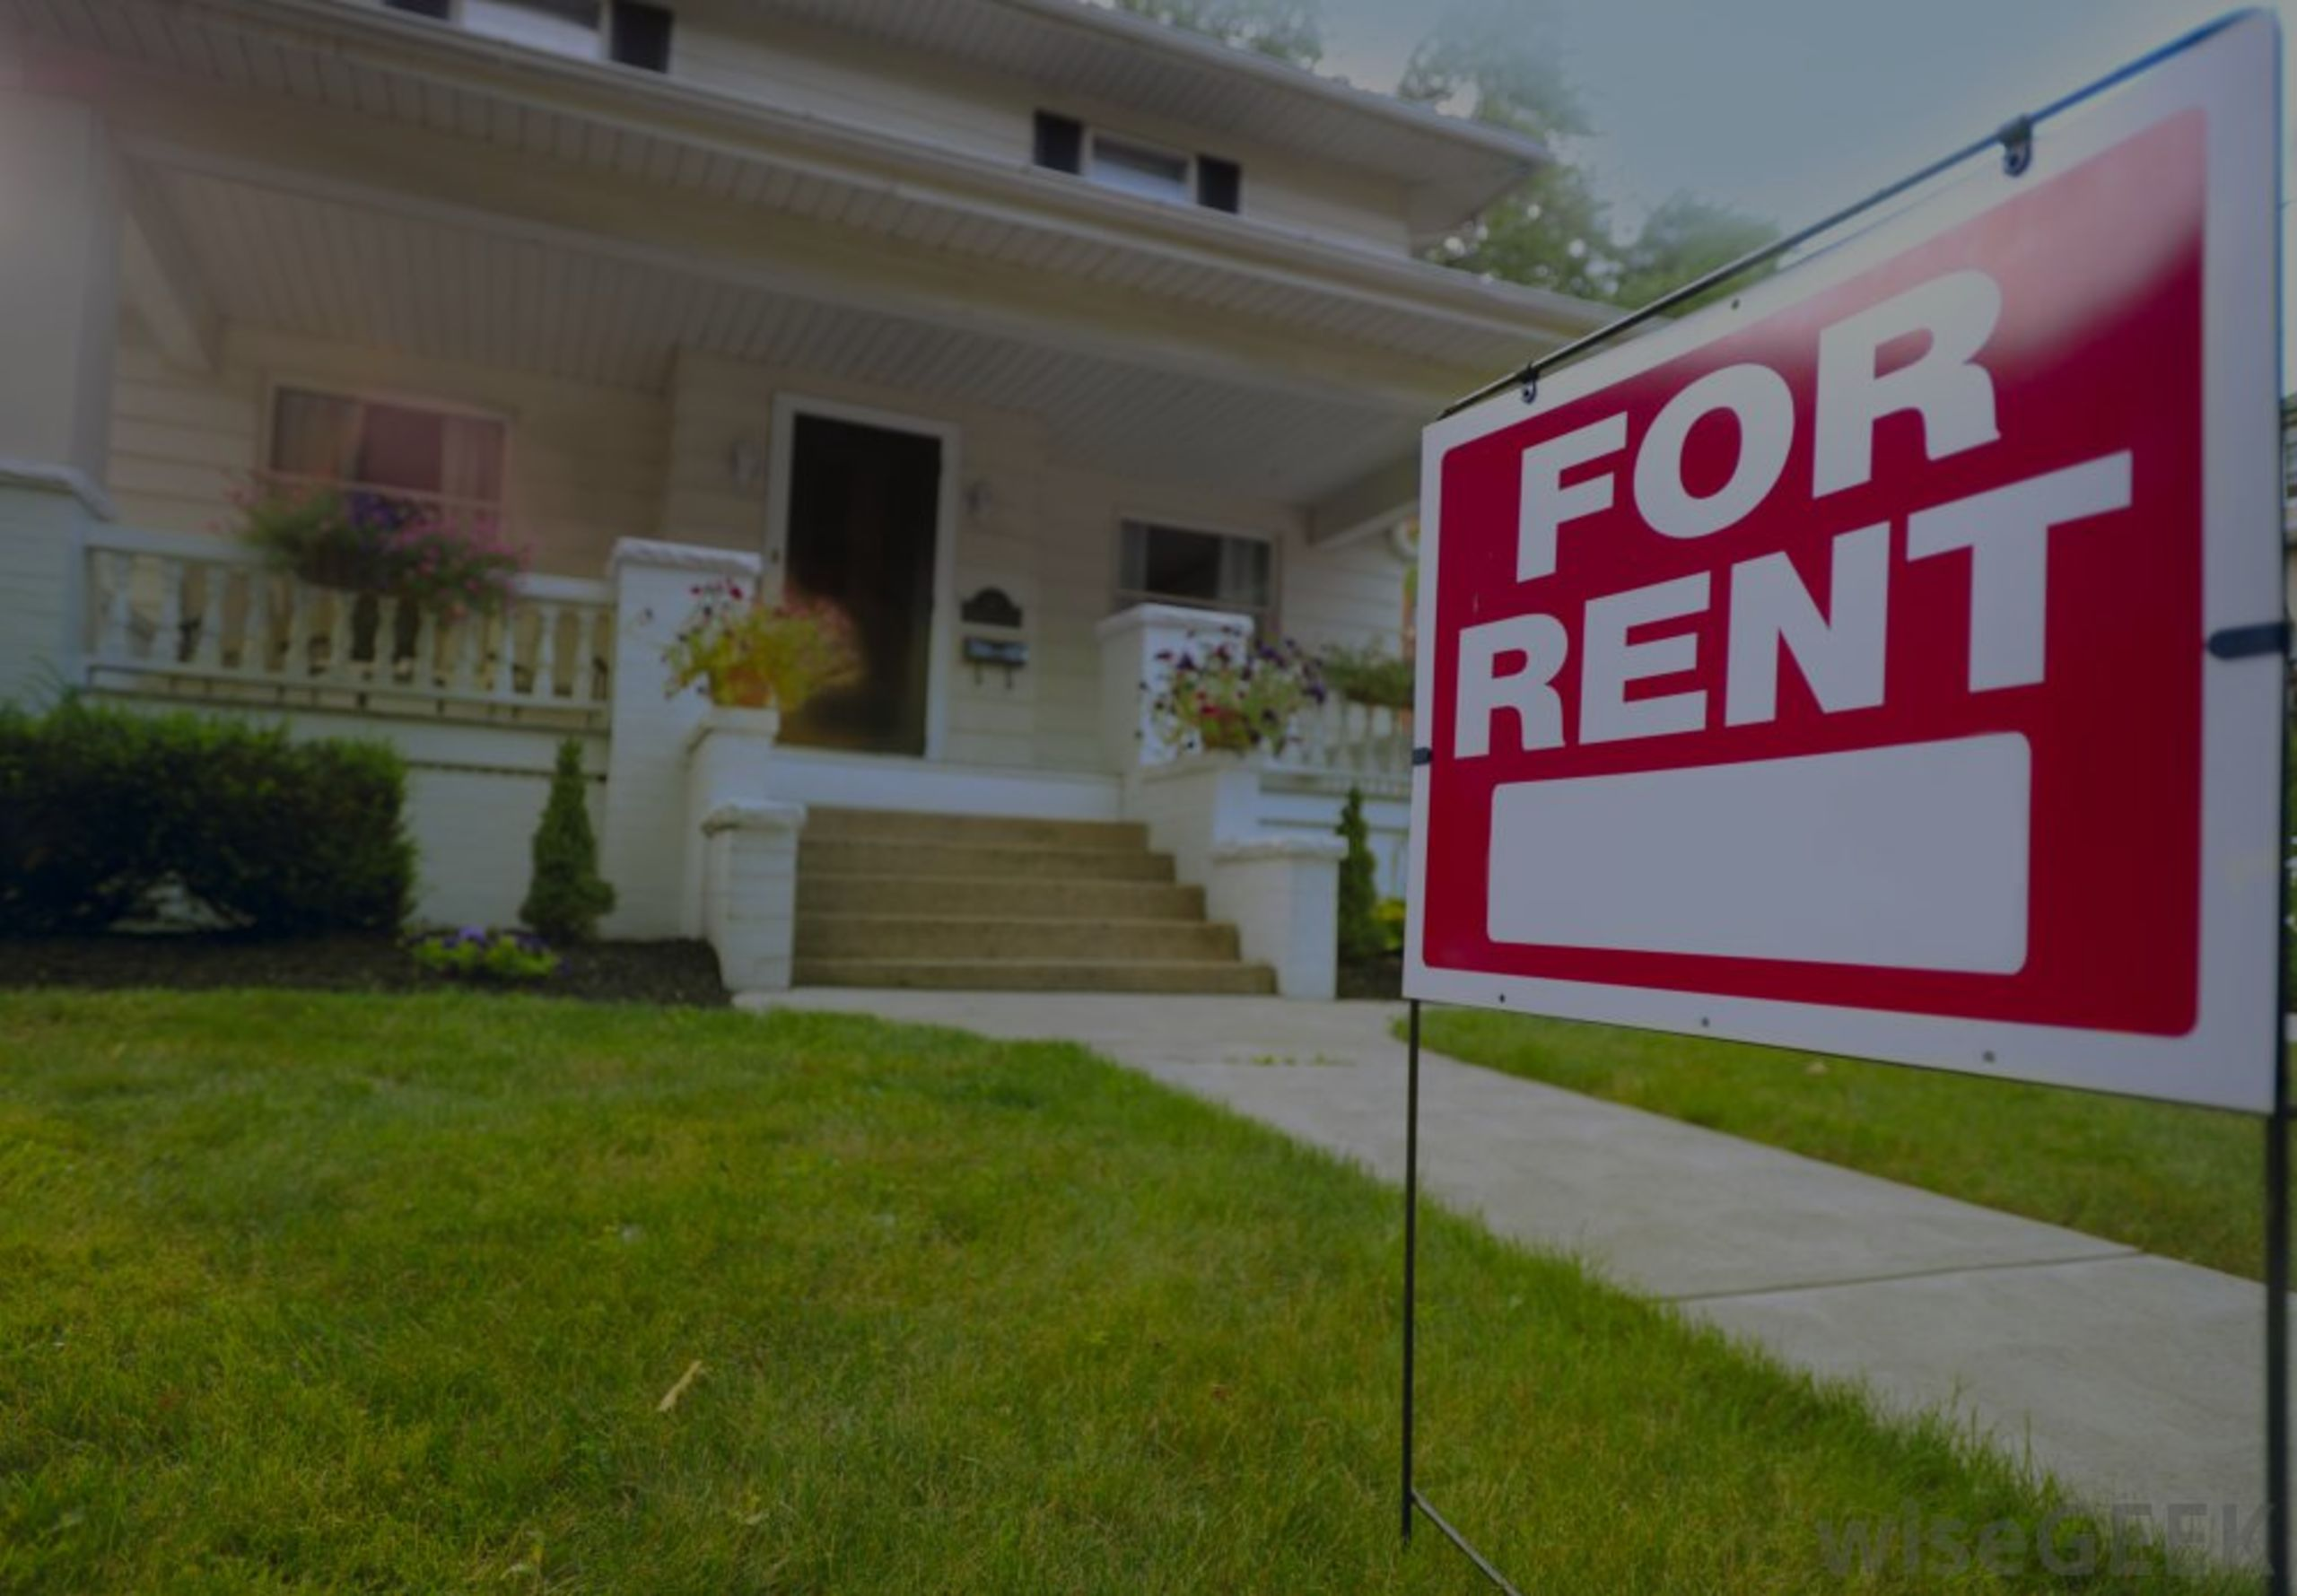 5 Secrets to Success With Your First Rental